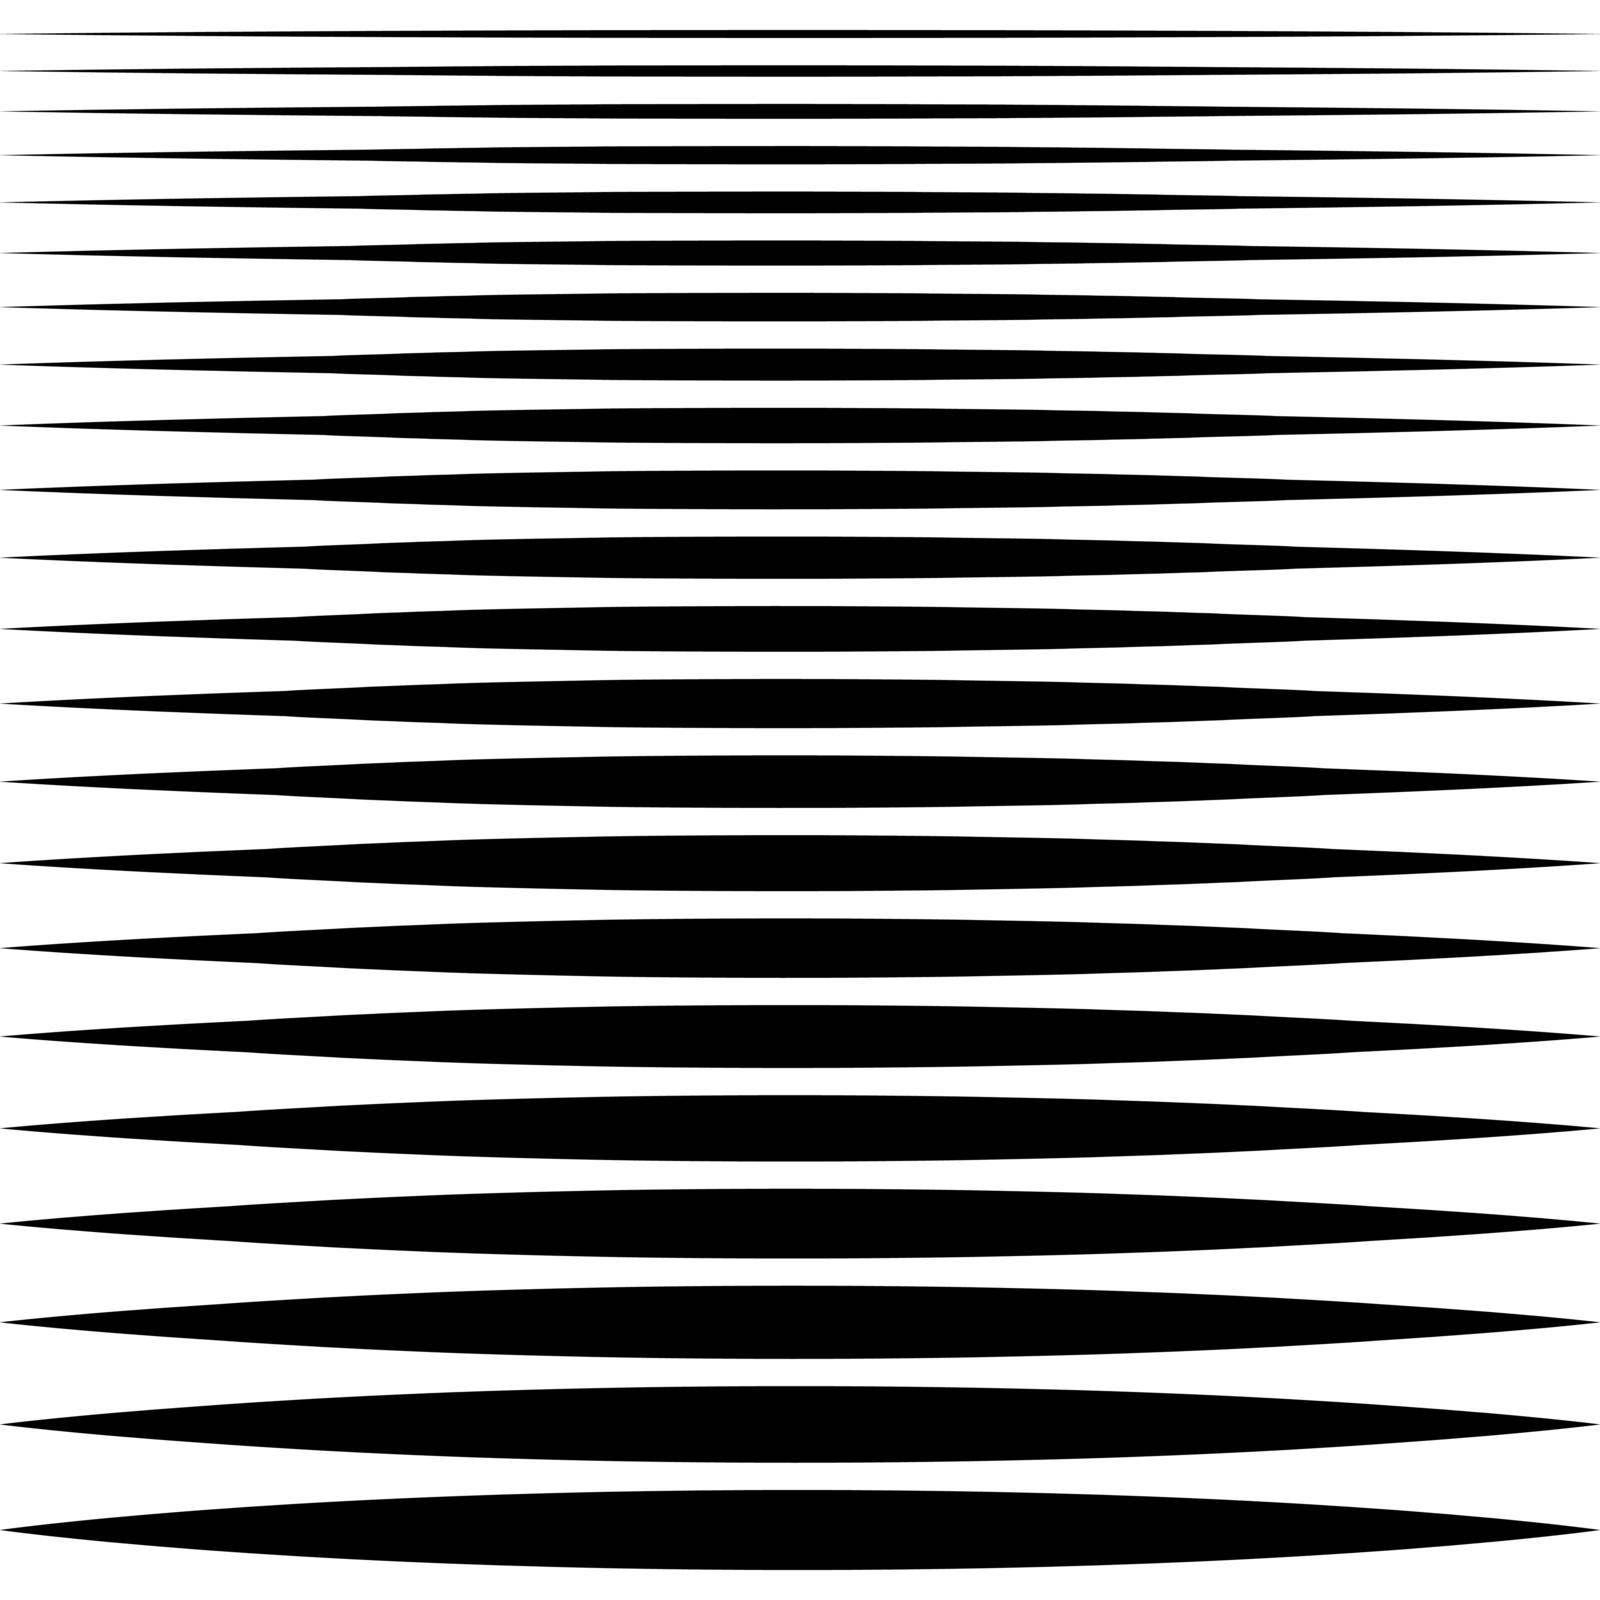 set of sharp horizontal lines different profile thickness, vector needle line design element by koksikoks